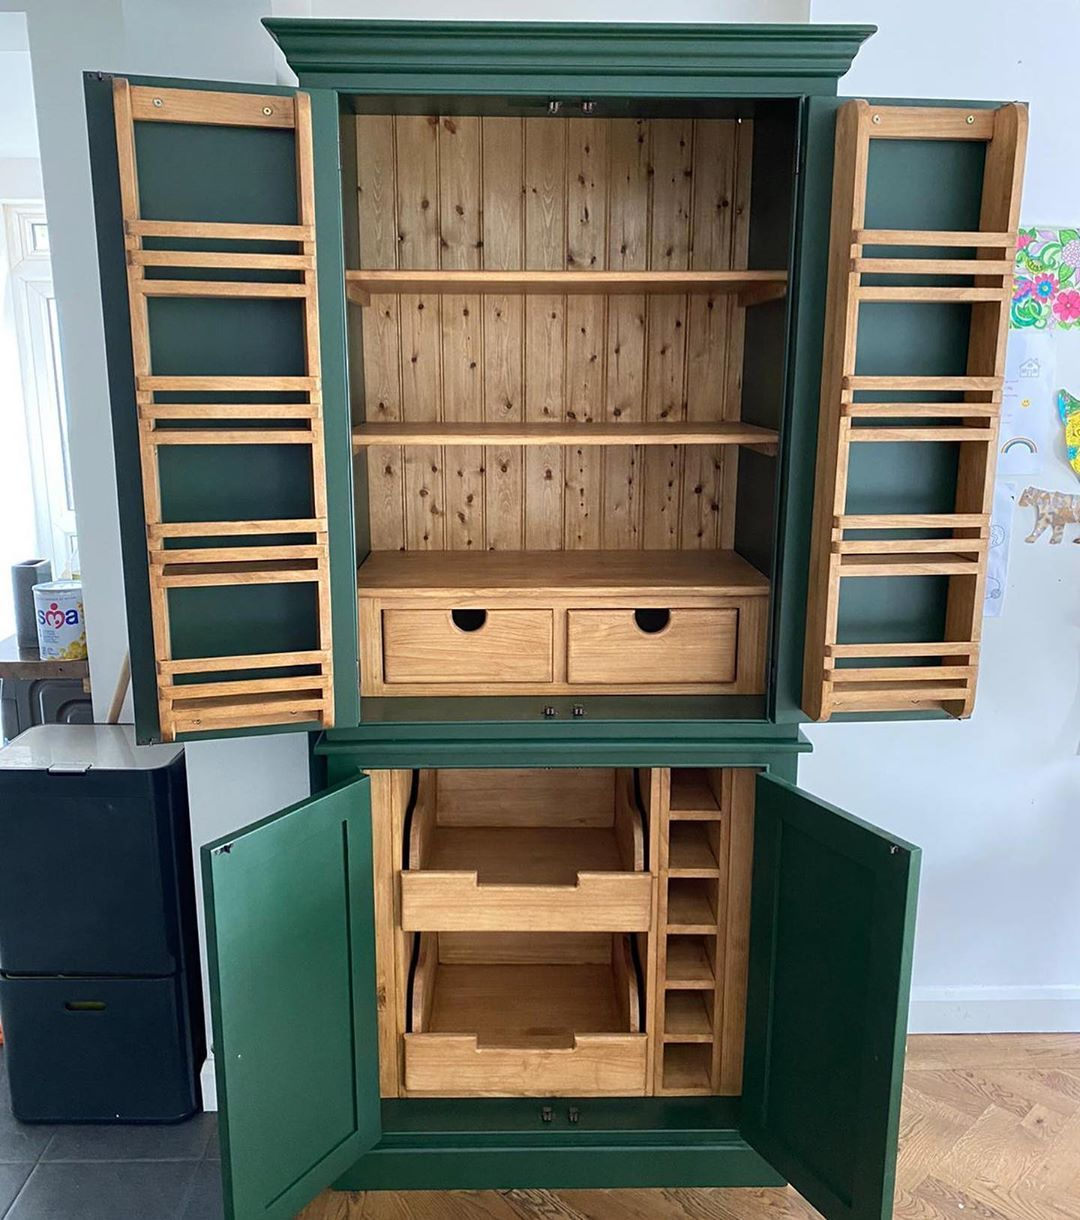 Raw Furniture Uk On Instagram Everybody Loves A Larder Cupboard First One We Ve Done In Farrow Ball Duck Gree In 2020 Raw Furniture Larder Cupboard Furniture Uk